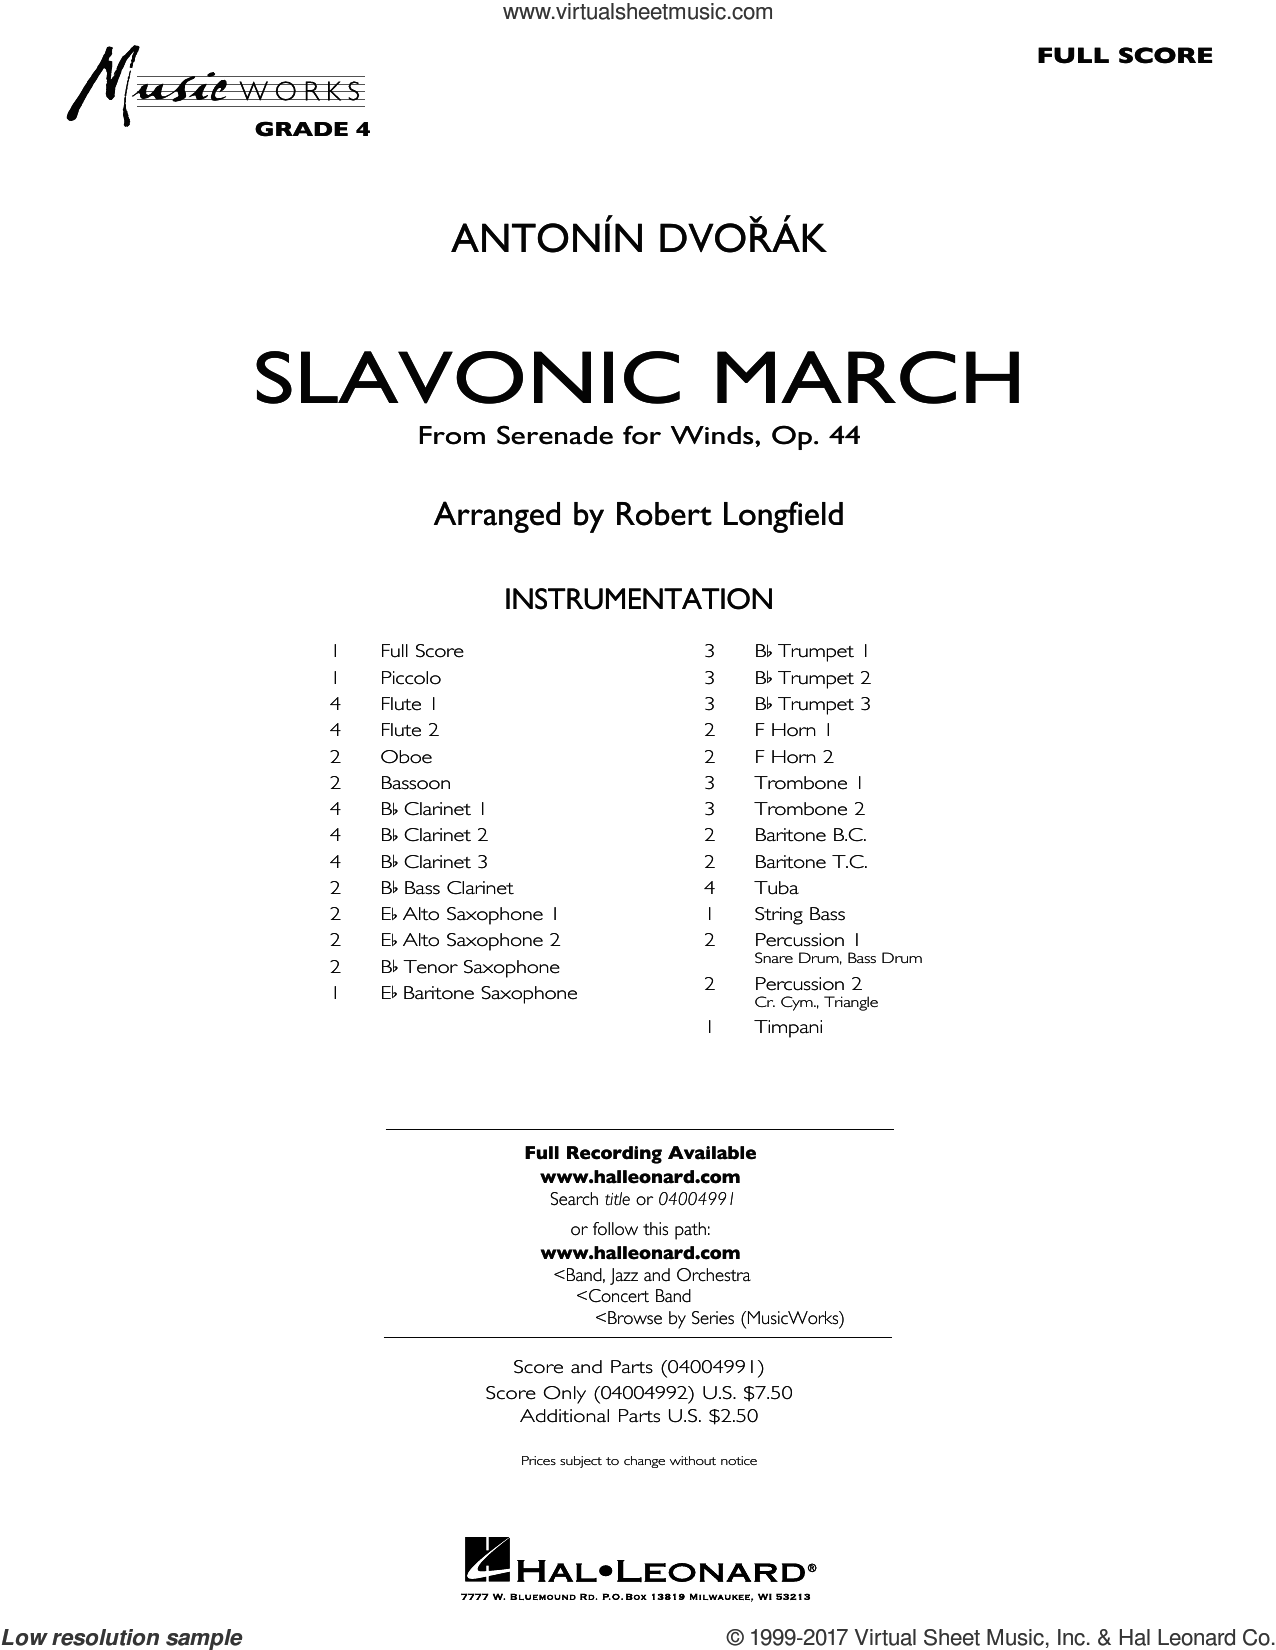 Slavonic March (from Serenade for Winds, Op. 44) (COMPLETE) sheet music for concert band by Robert Longfield and Antonin Dvorak, classical score, intermediate